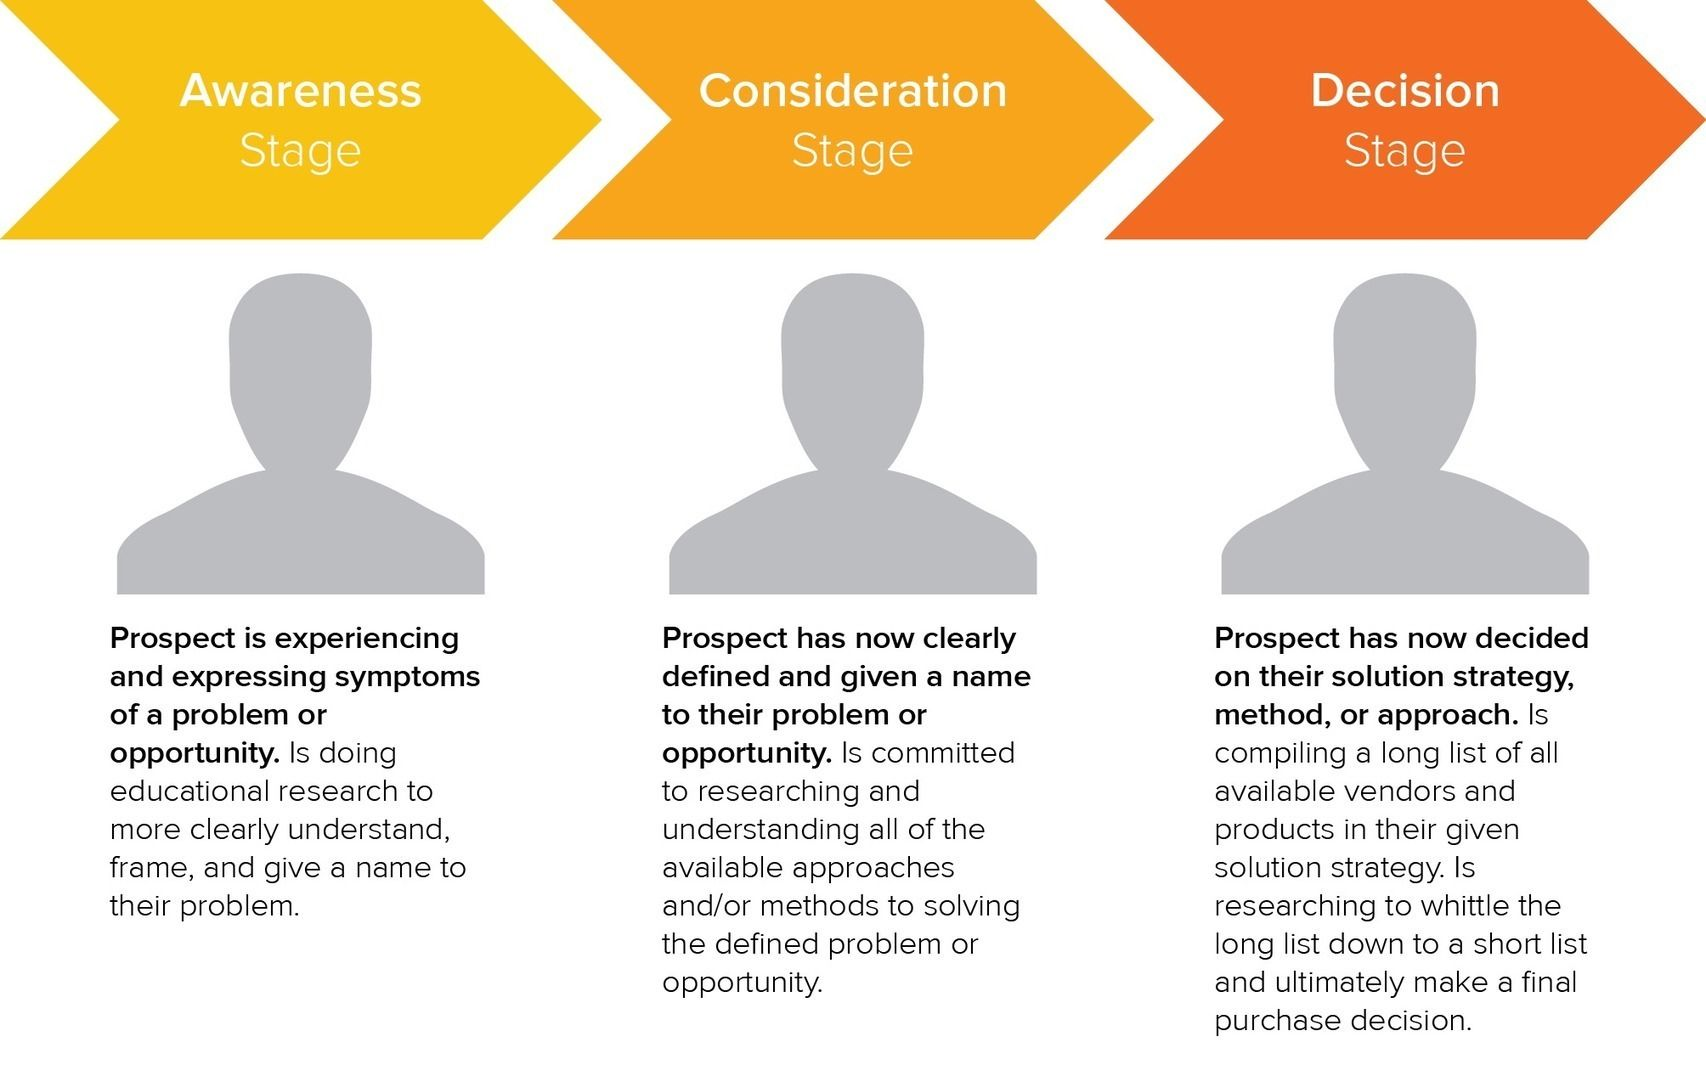 Hubspot Offers A Comprehensive Guide To Help You Provide Engaging